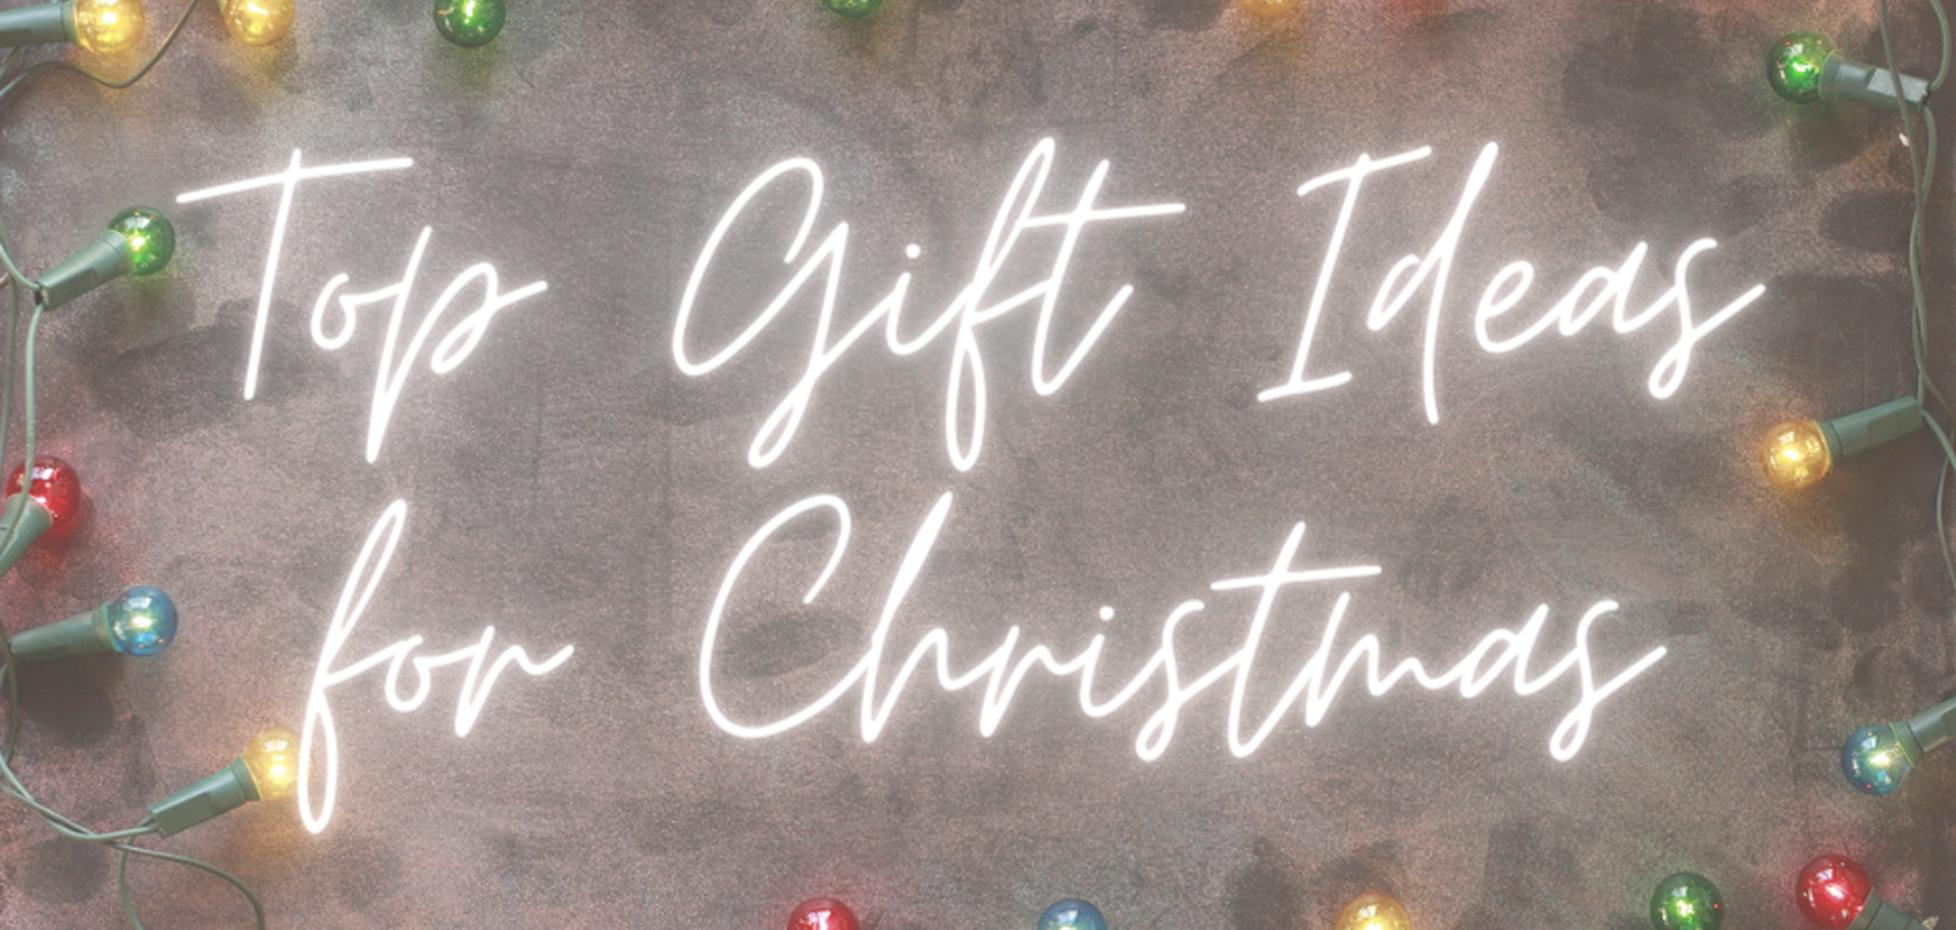 Top Gift Ideas for Christmas